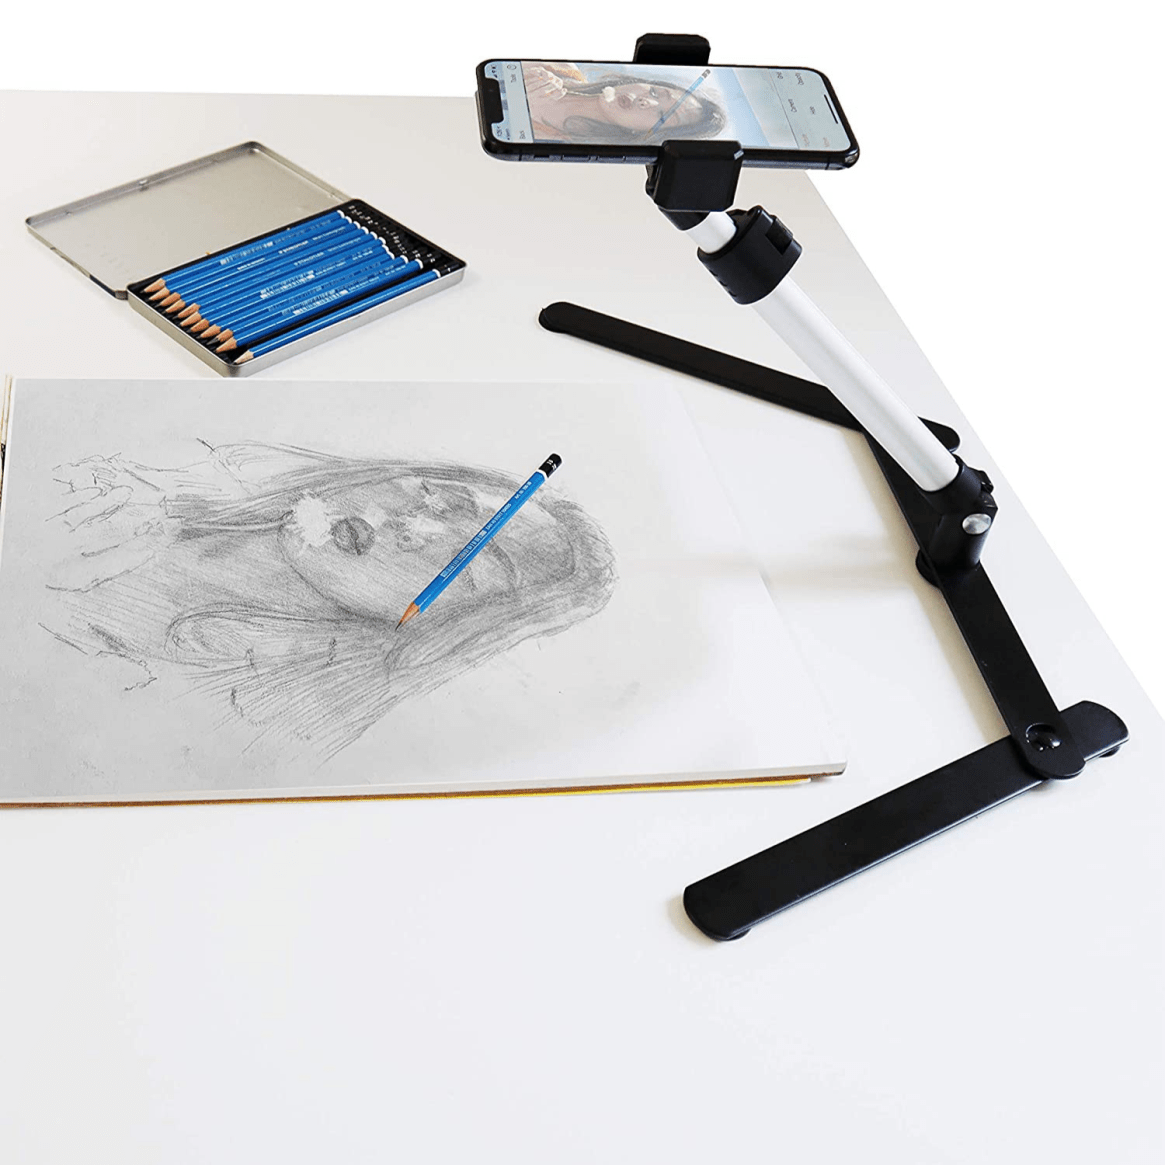 Desk Phone Stand for Drawing Tracing Images